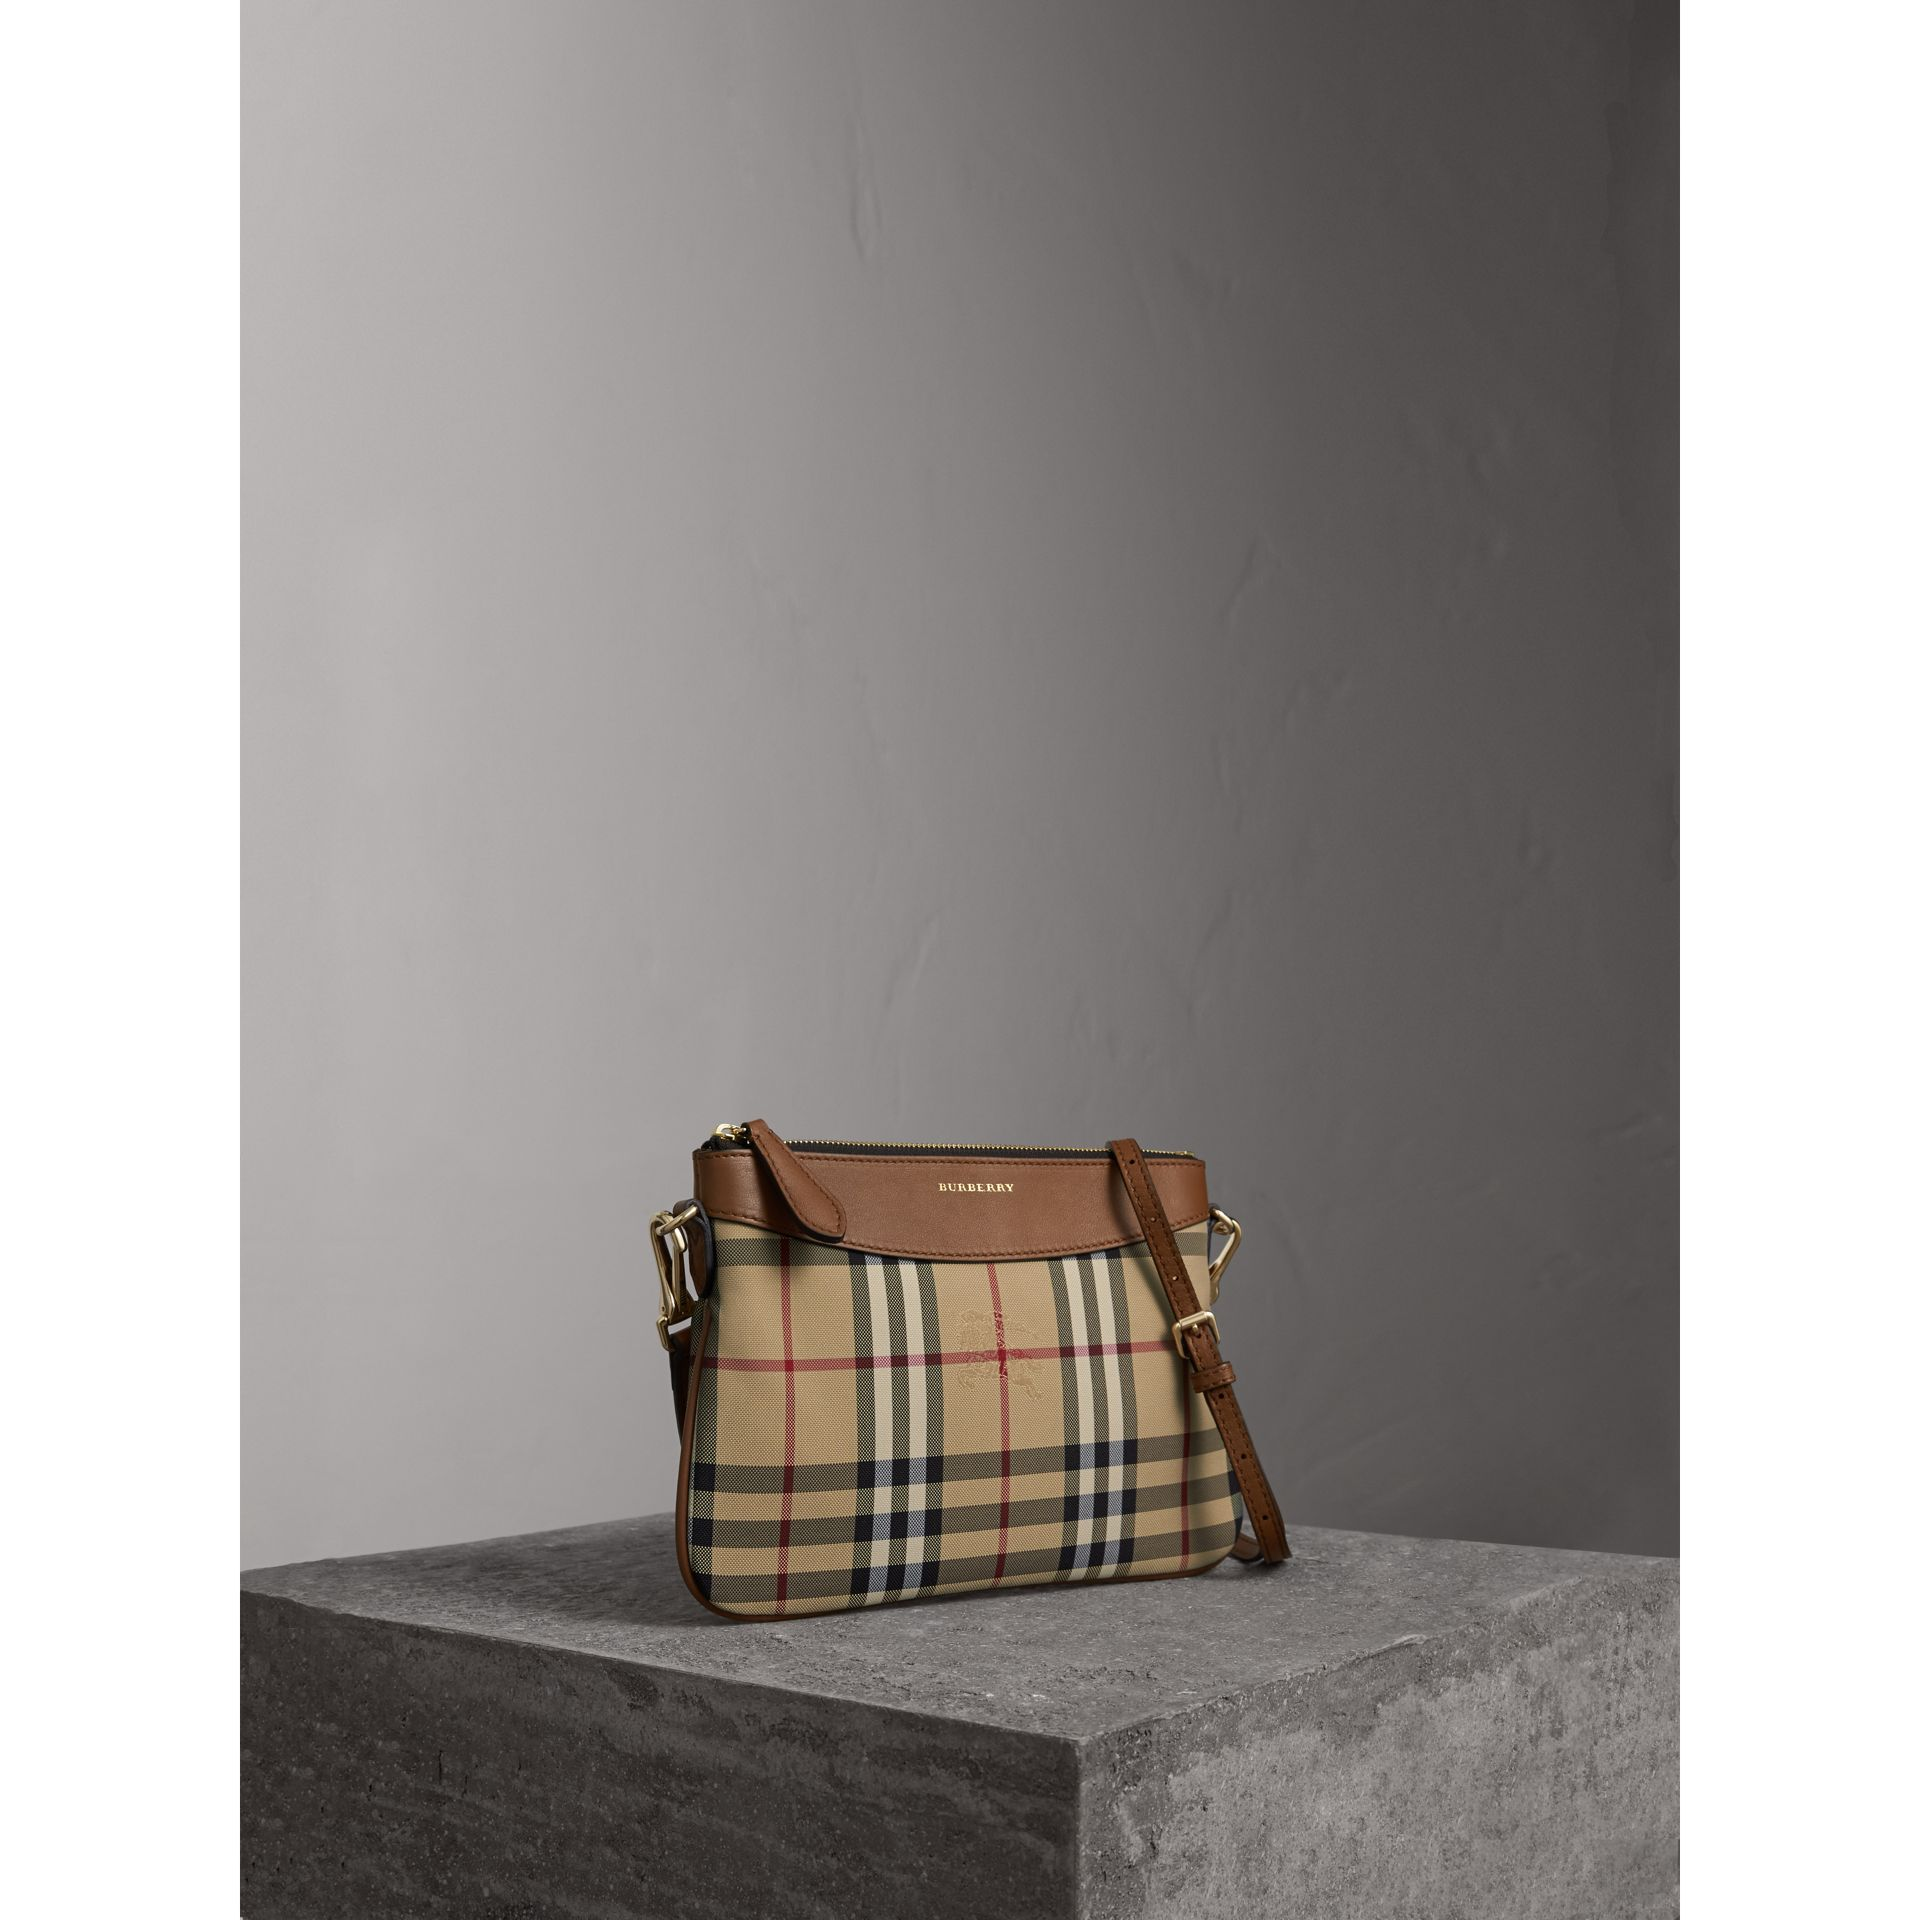 Horseferry Check and Leather Clutch Bag in Tan - Women | Burberry Singapore - gallery image 1